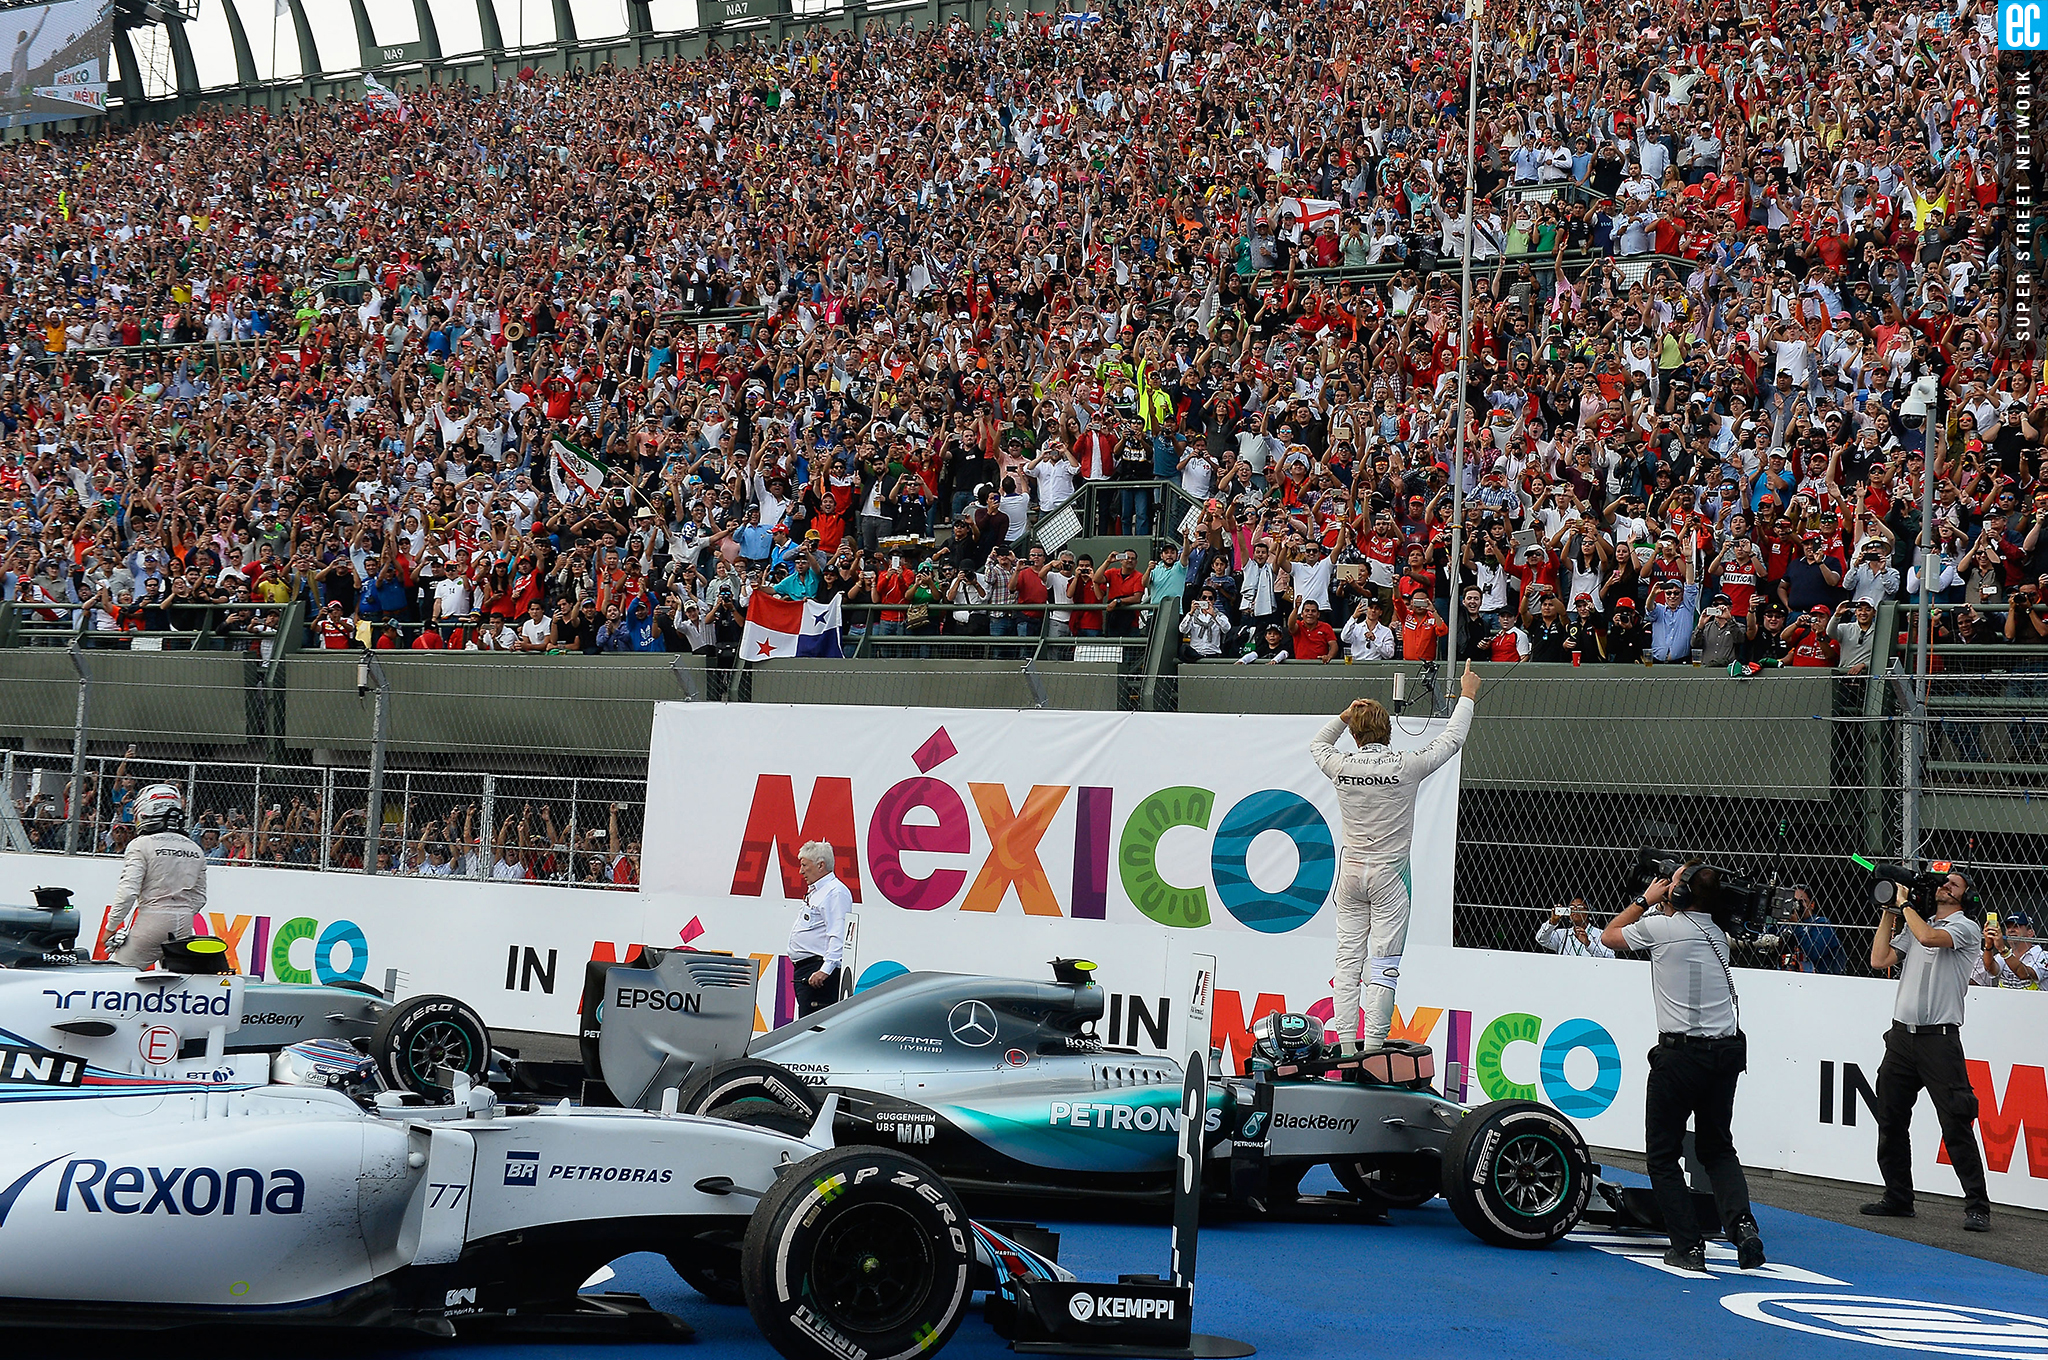 7bad4f0817996 Mexican grand prix formula one cars before audience